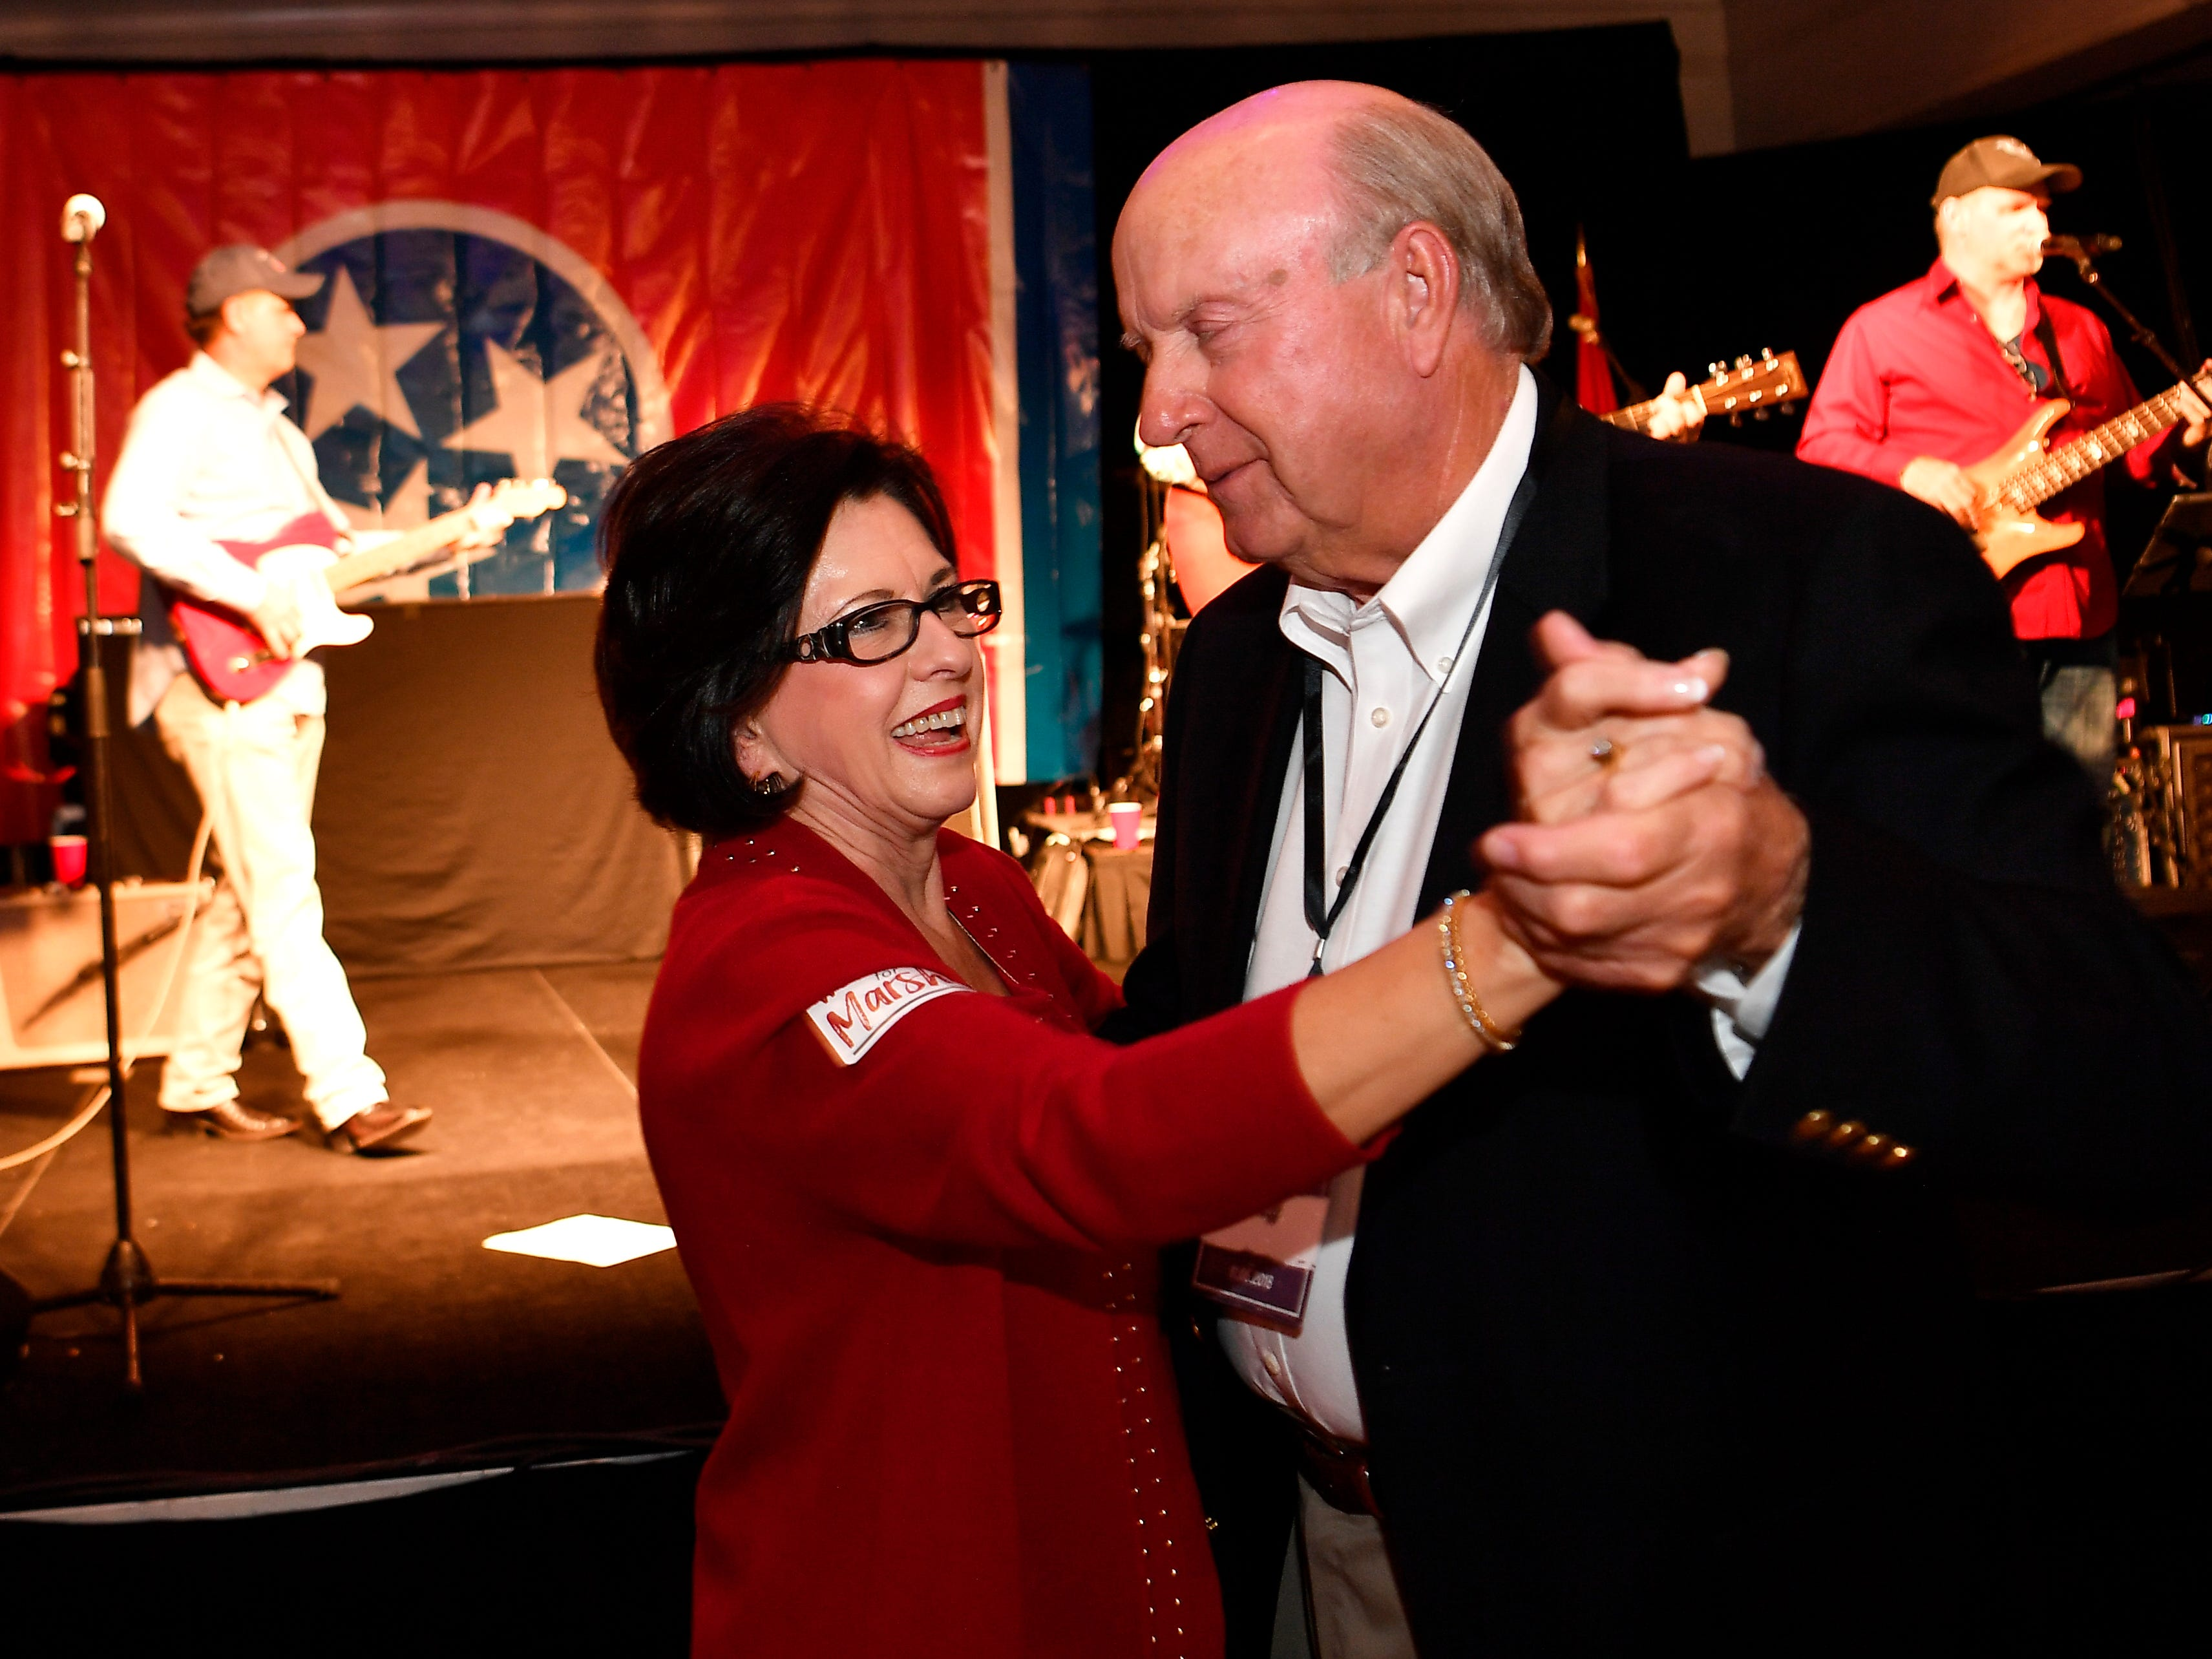 Donna Choate and Cary Johnson dance at the election night watch party for Republican U.S. Senate candidate Marsha Blackburn Tuesday, Nov. 6, 2018, in Franklin, Tenn.